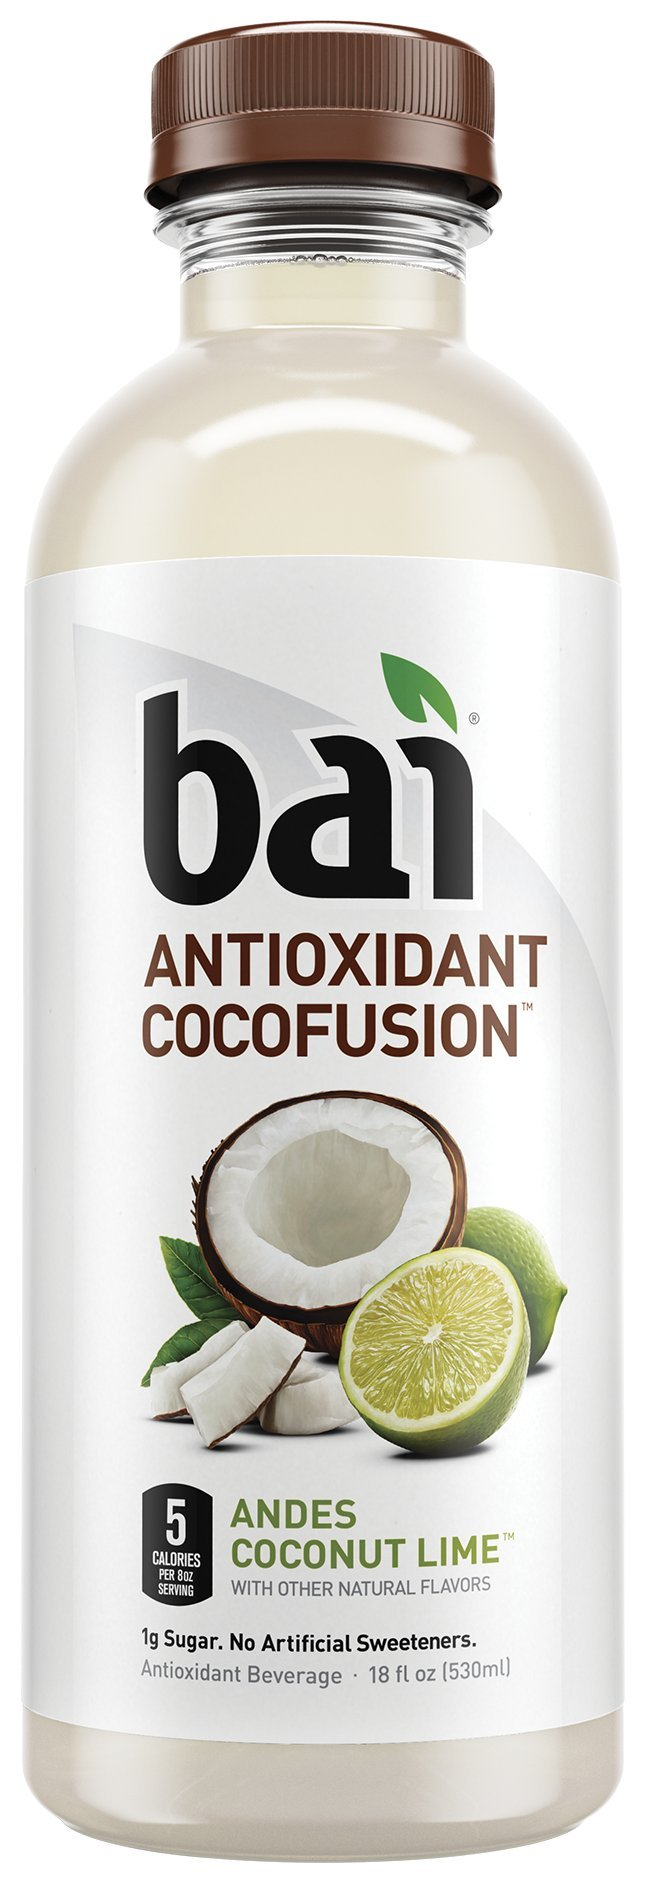 Bai Coconut Flavored Water, Andes Coconut Lime, Antioxidant Infused Drinks, 18 Fluid Ounce